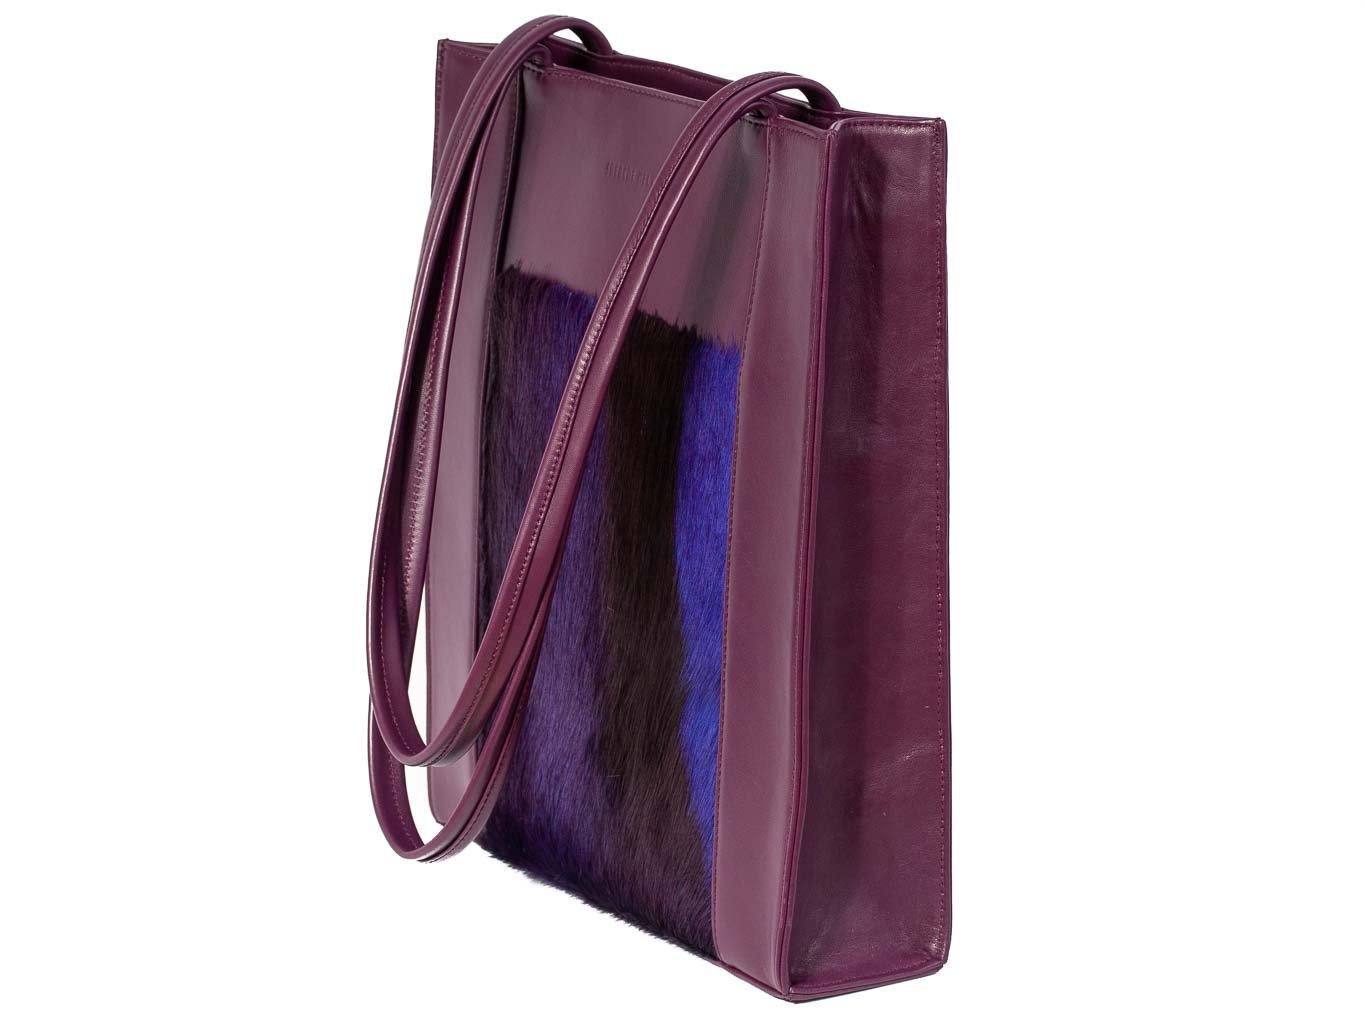 Tote Springbok Handbag in Deep Purple with a stripe feature by Sherene Melinda front handle